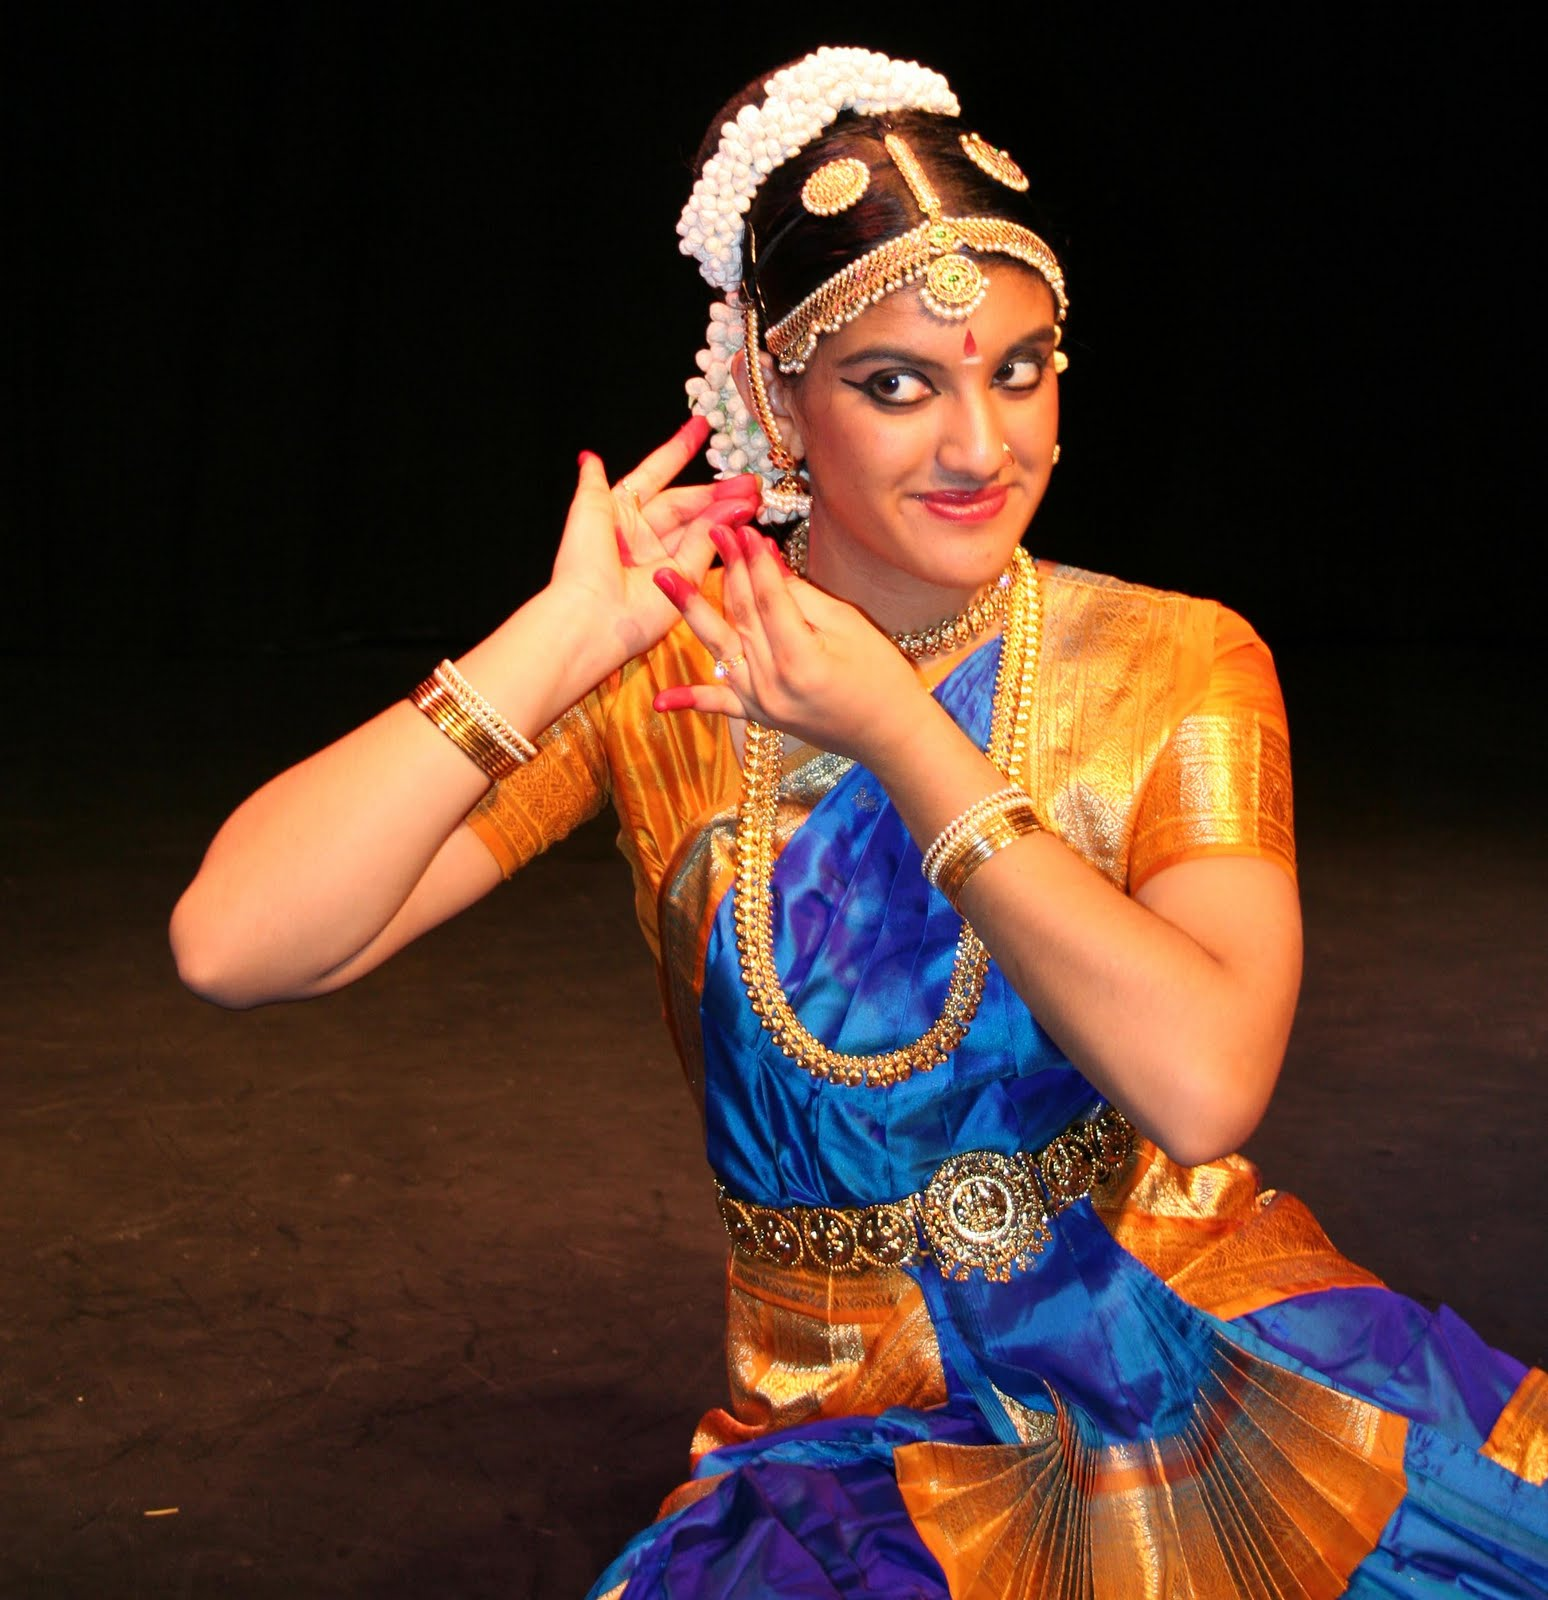 Indian Classical Dance Images, Stock Photos Vectors Shutterstock Dance pictures of india